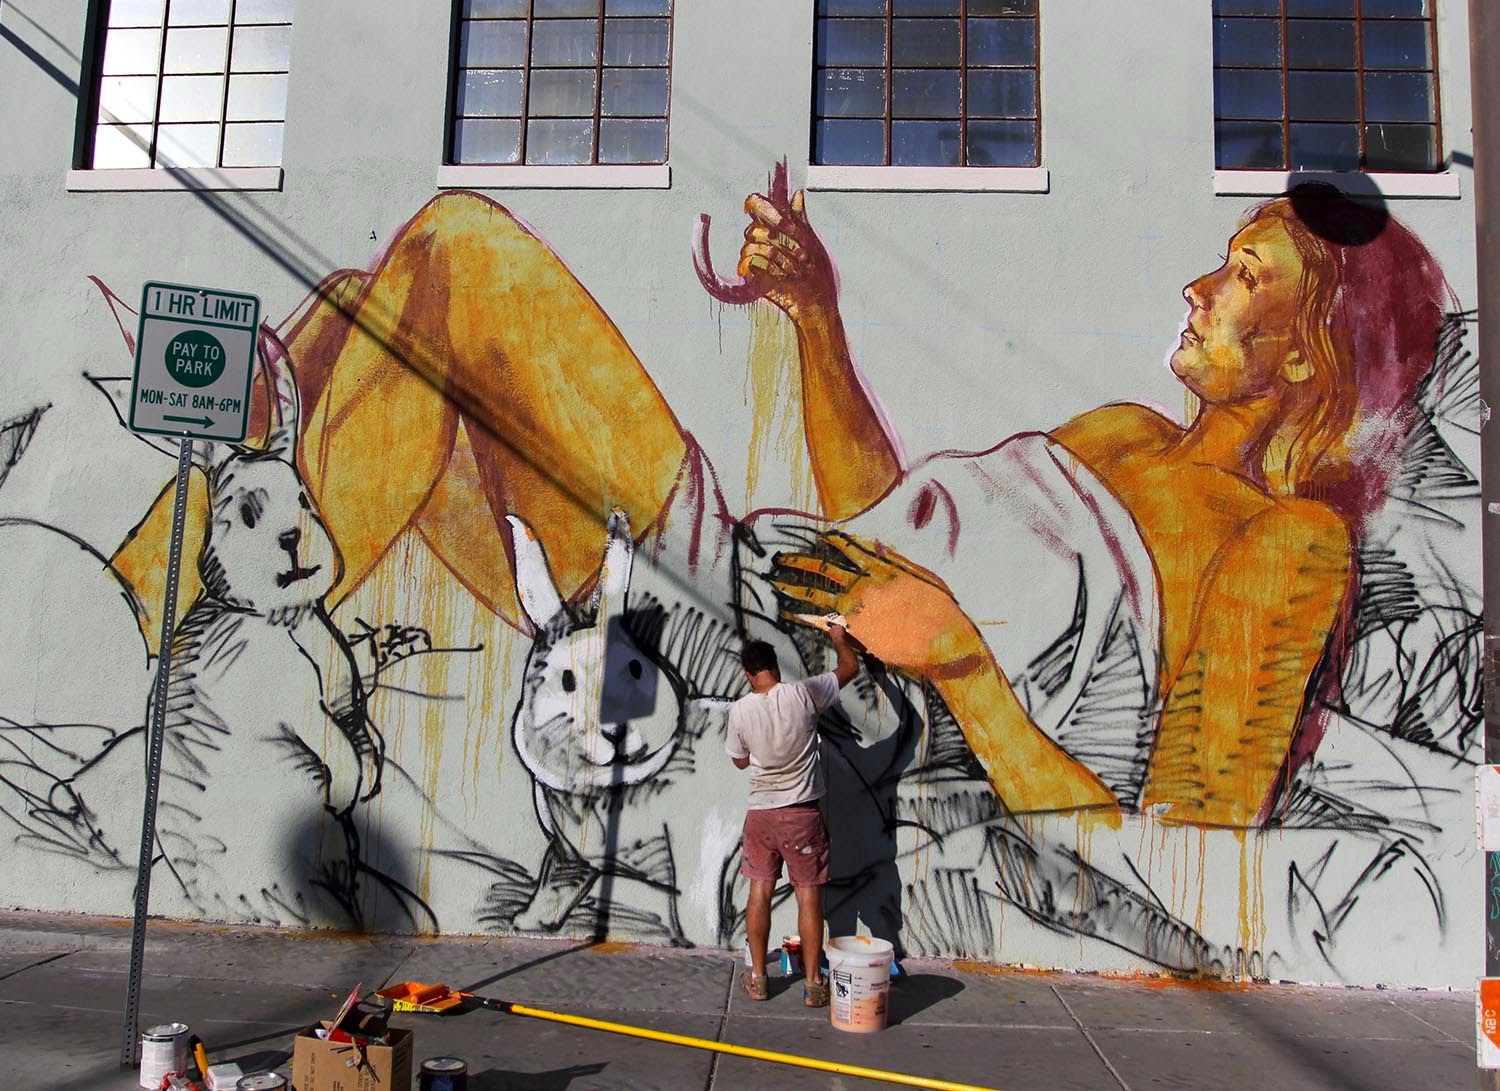 After a beautiful piece in Brisbane a few days ago, Fintan Magee is currently in the United States where he started working on a new piece in Downtown Las Vegas.